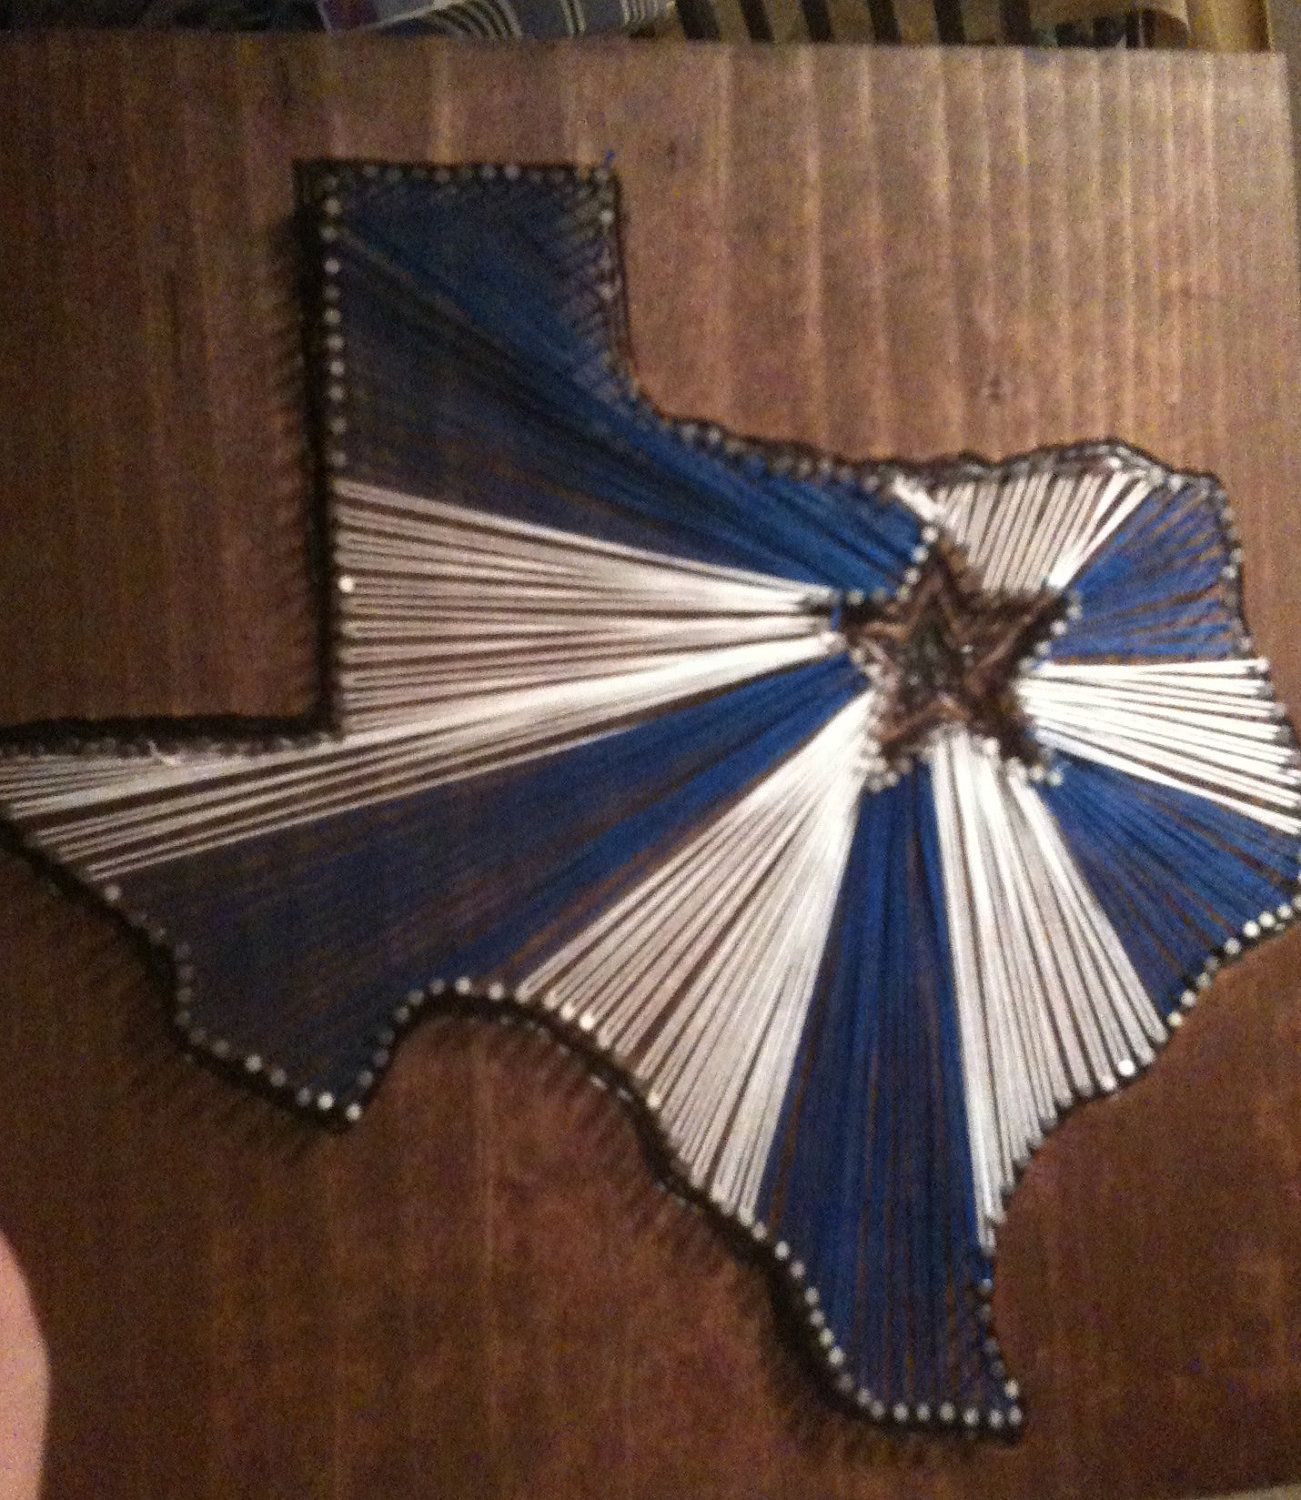 different color string art for different teams/cities | Crafty ideas ...